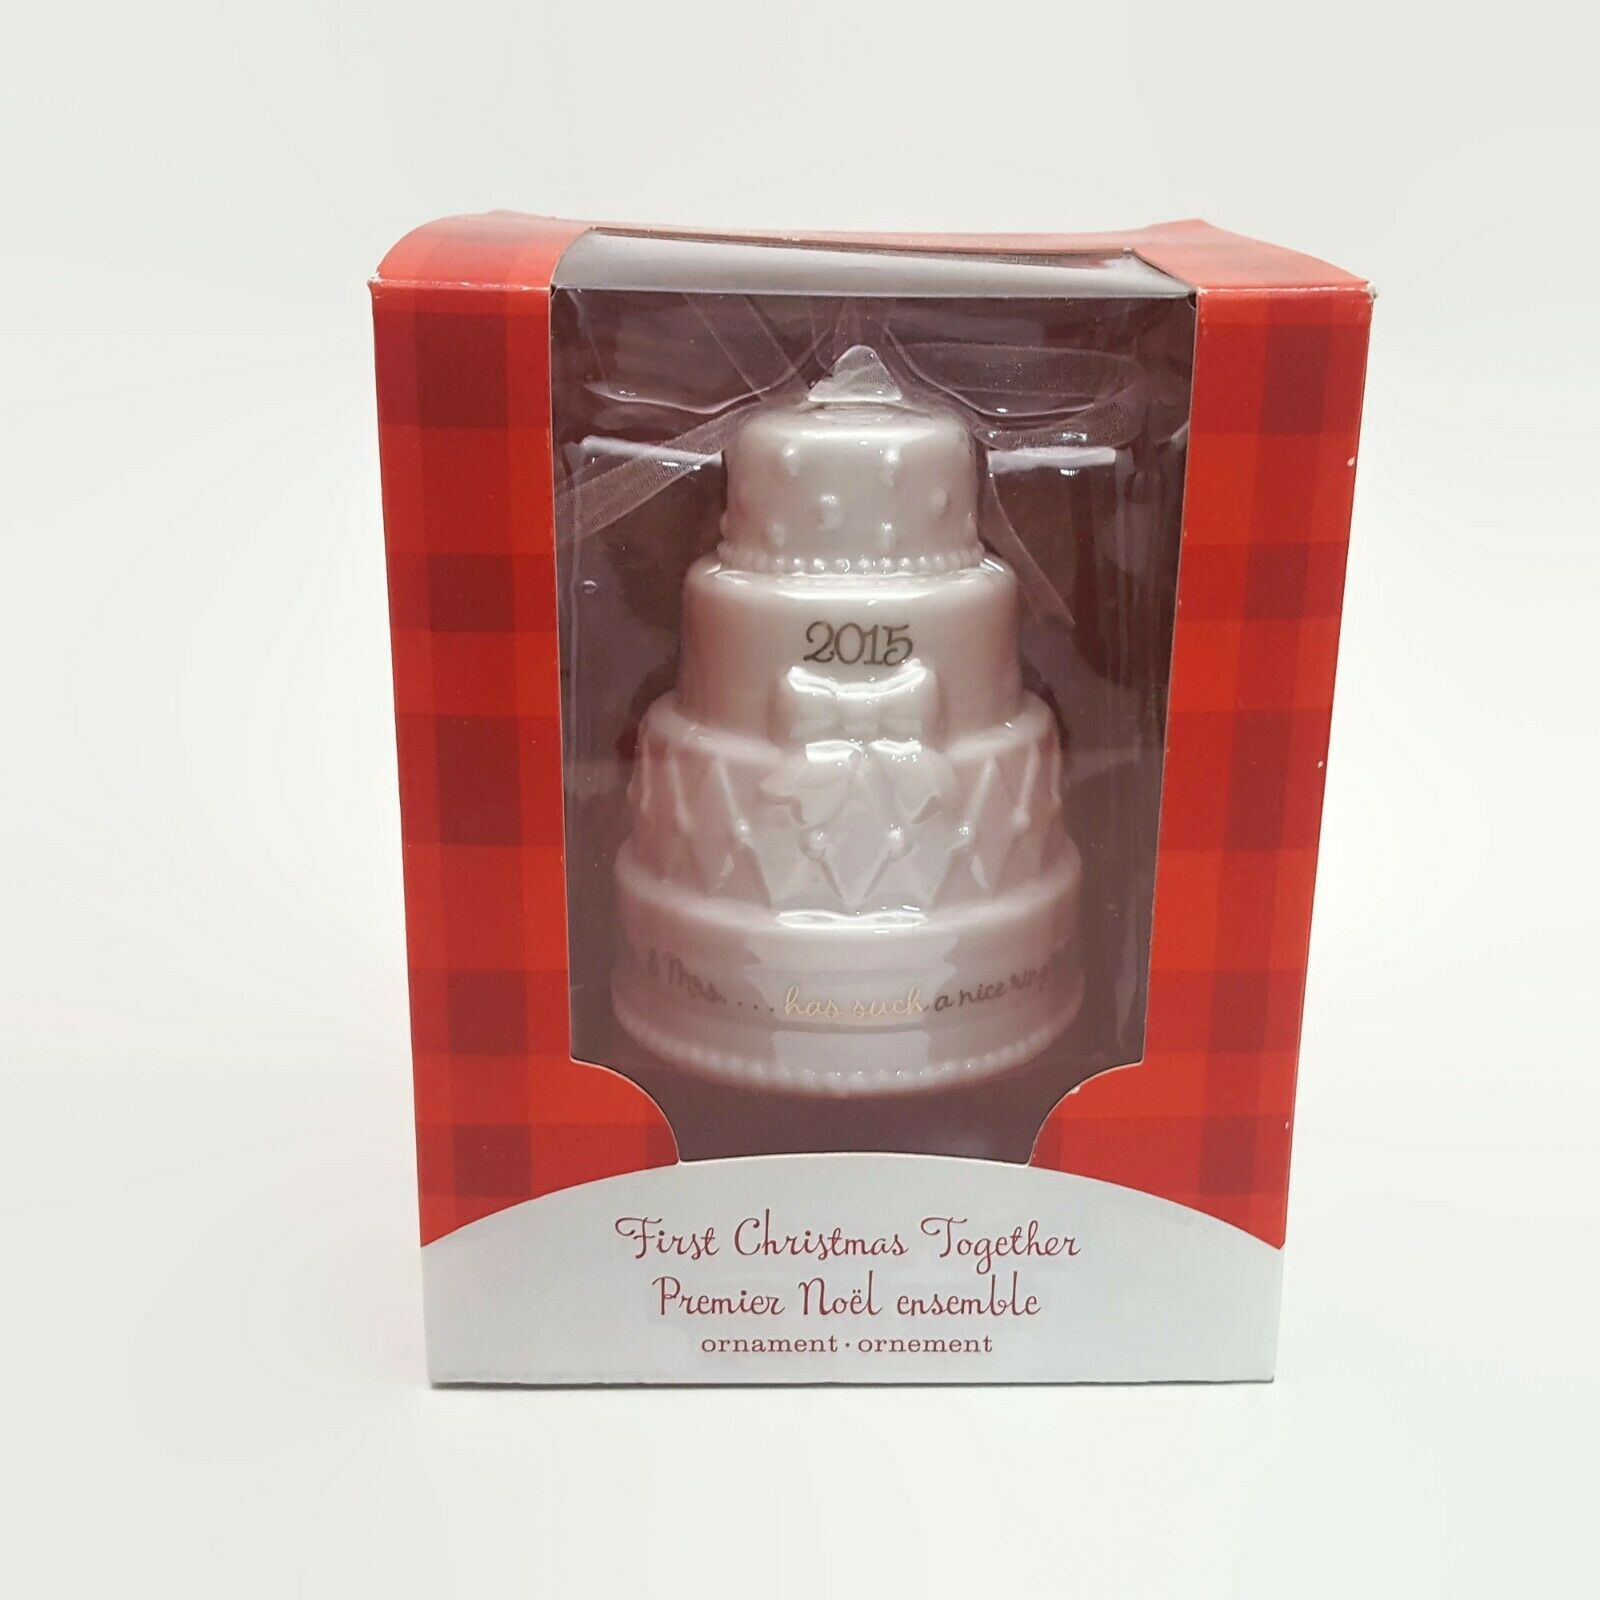 Primary image for American Greetings 2015 First Christmas Together Wedding Cake Ornament New